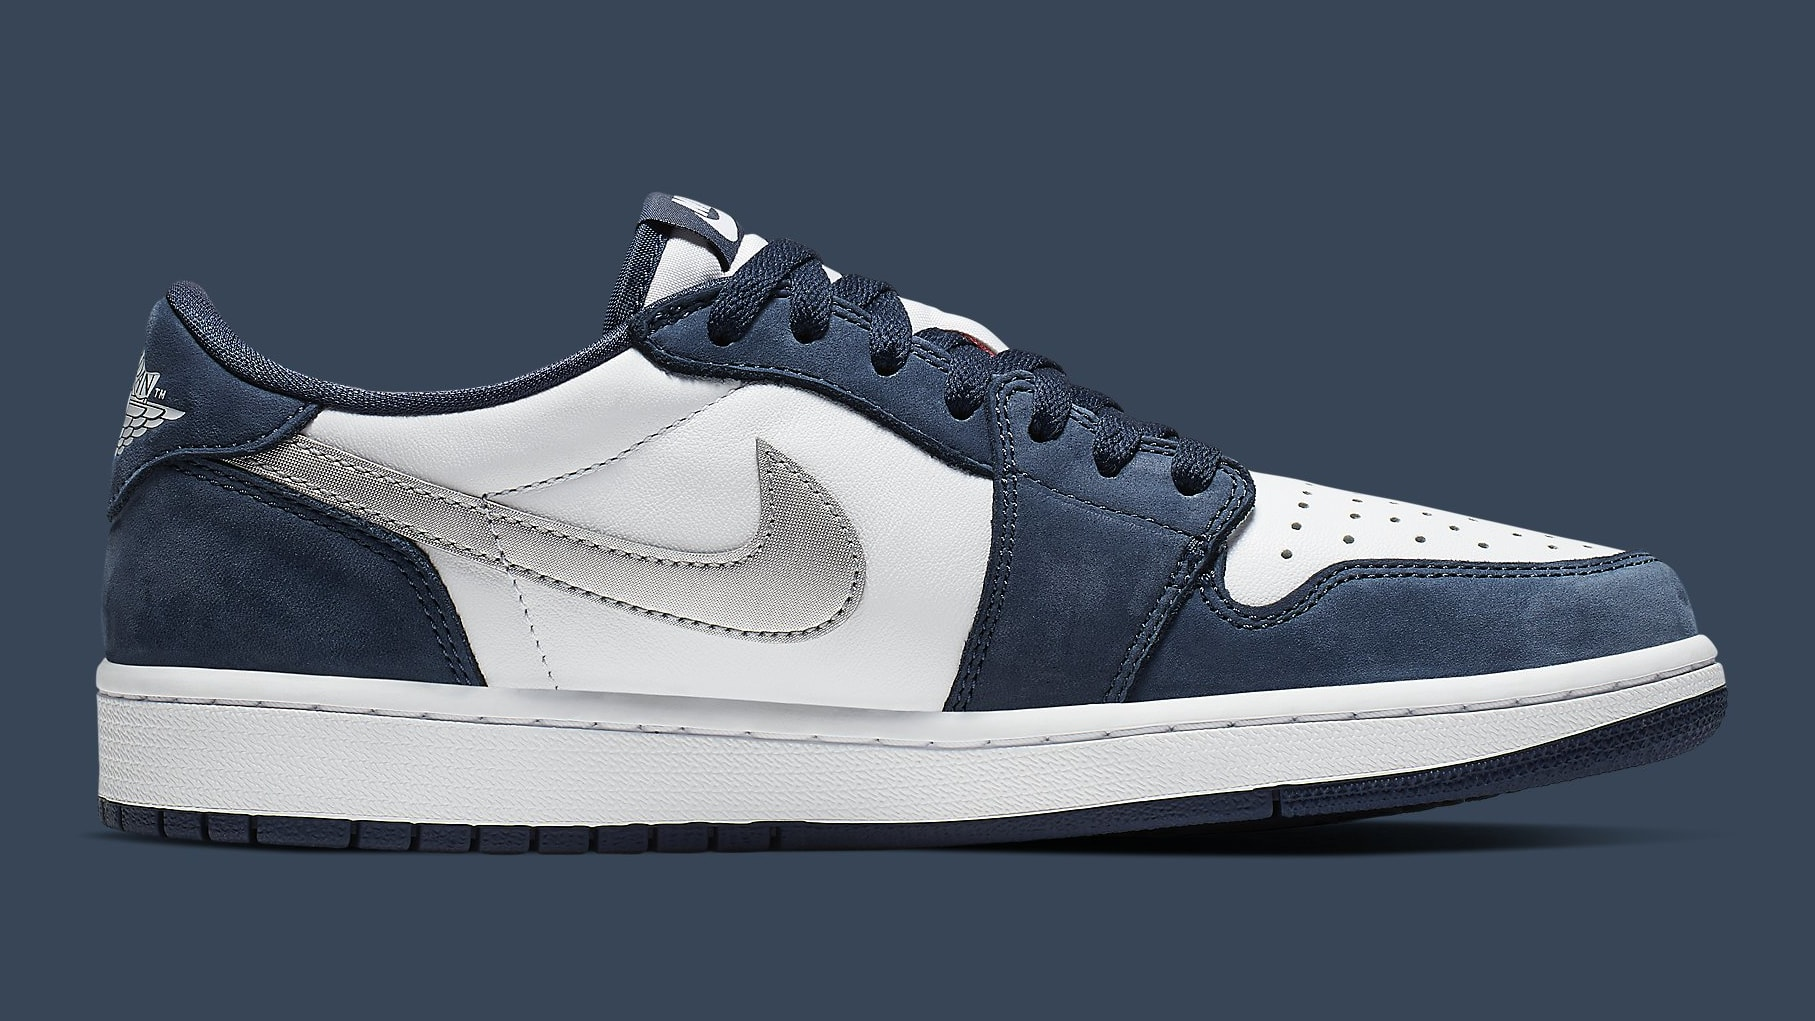 Nike SB Air Jordan 1 Low Koston Release Date CJ7891-400 Medial